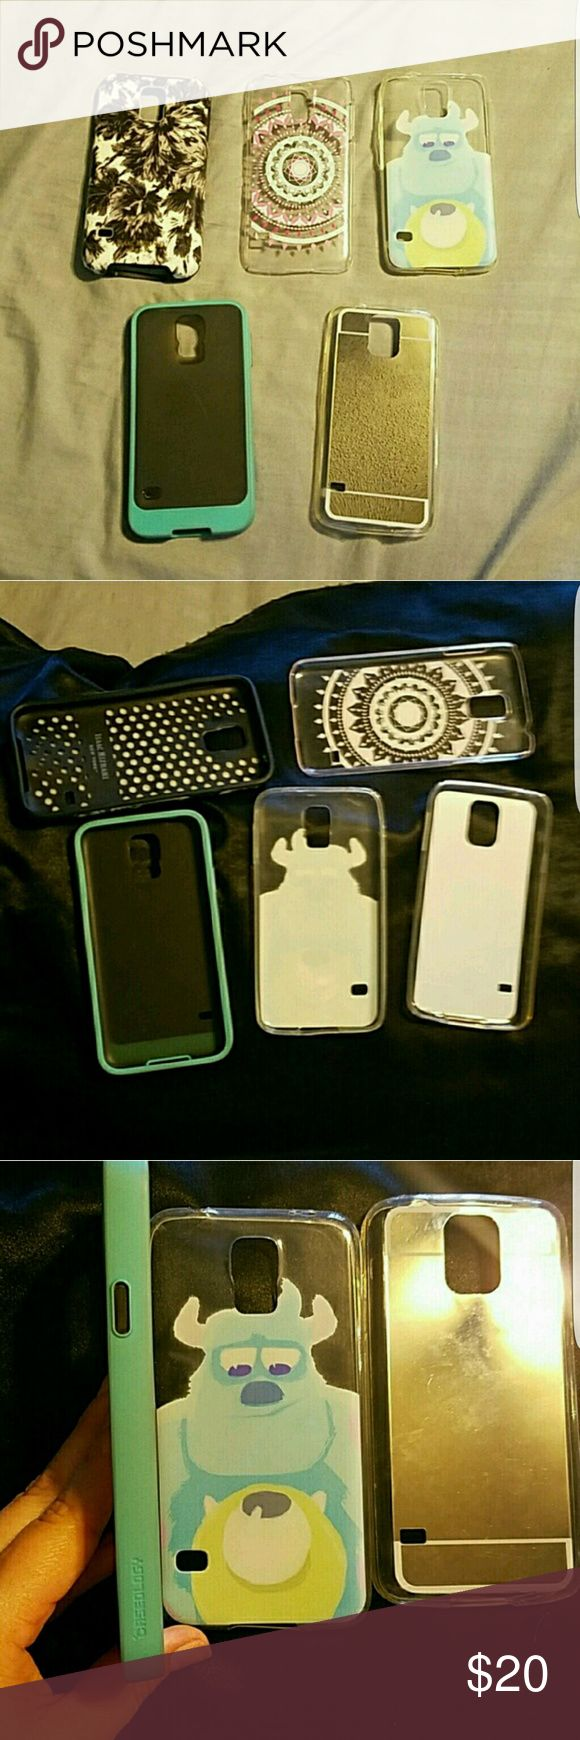 Samsung Galaxy s5 cases The price I'm charging is actually just for the Isaac Mizrahi case, all other cases are freebies lol. Not interested in selling separately. I paid over 60 bucks for all these cases, 30 for the Isaac mizrahi one samsung Other